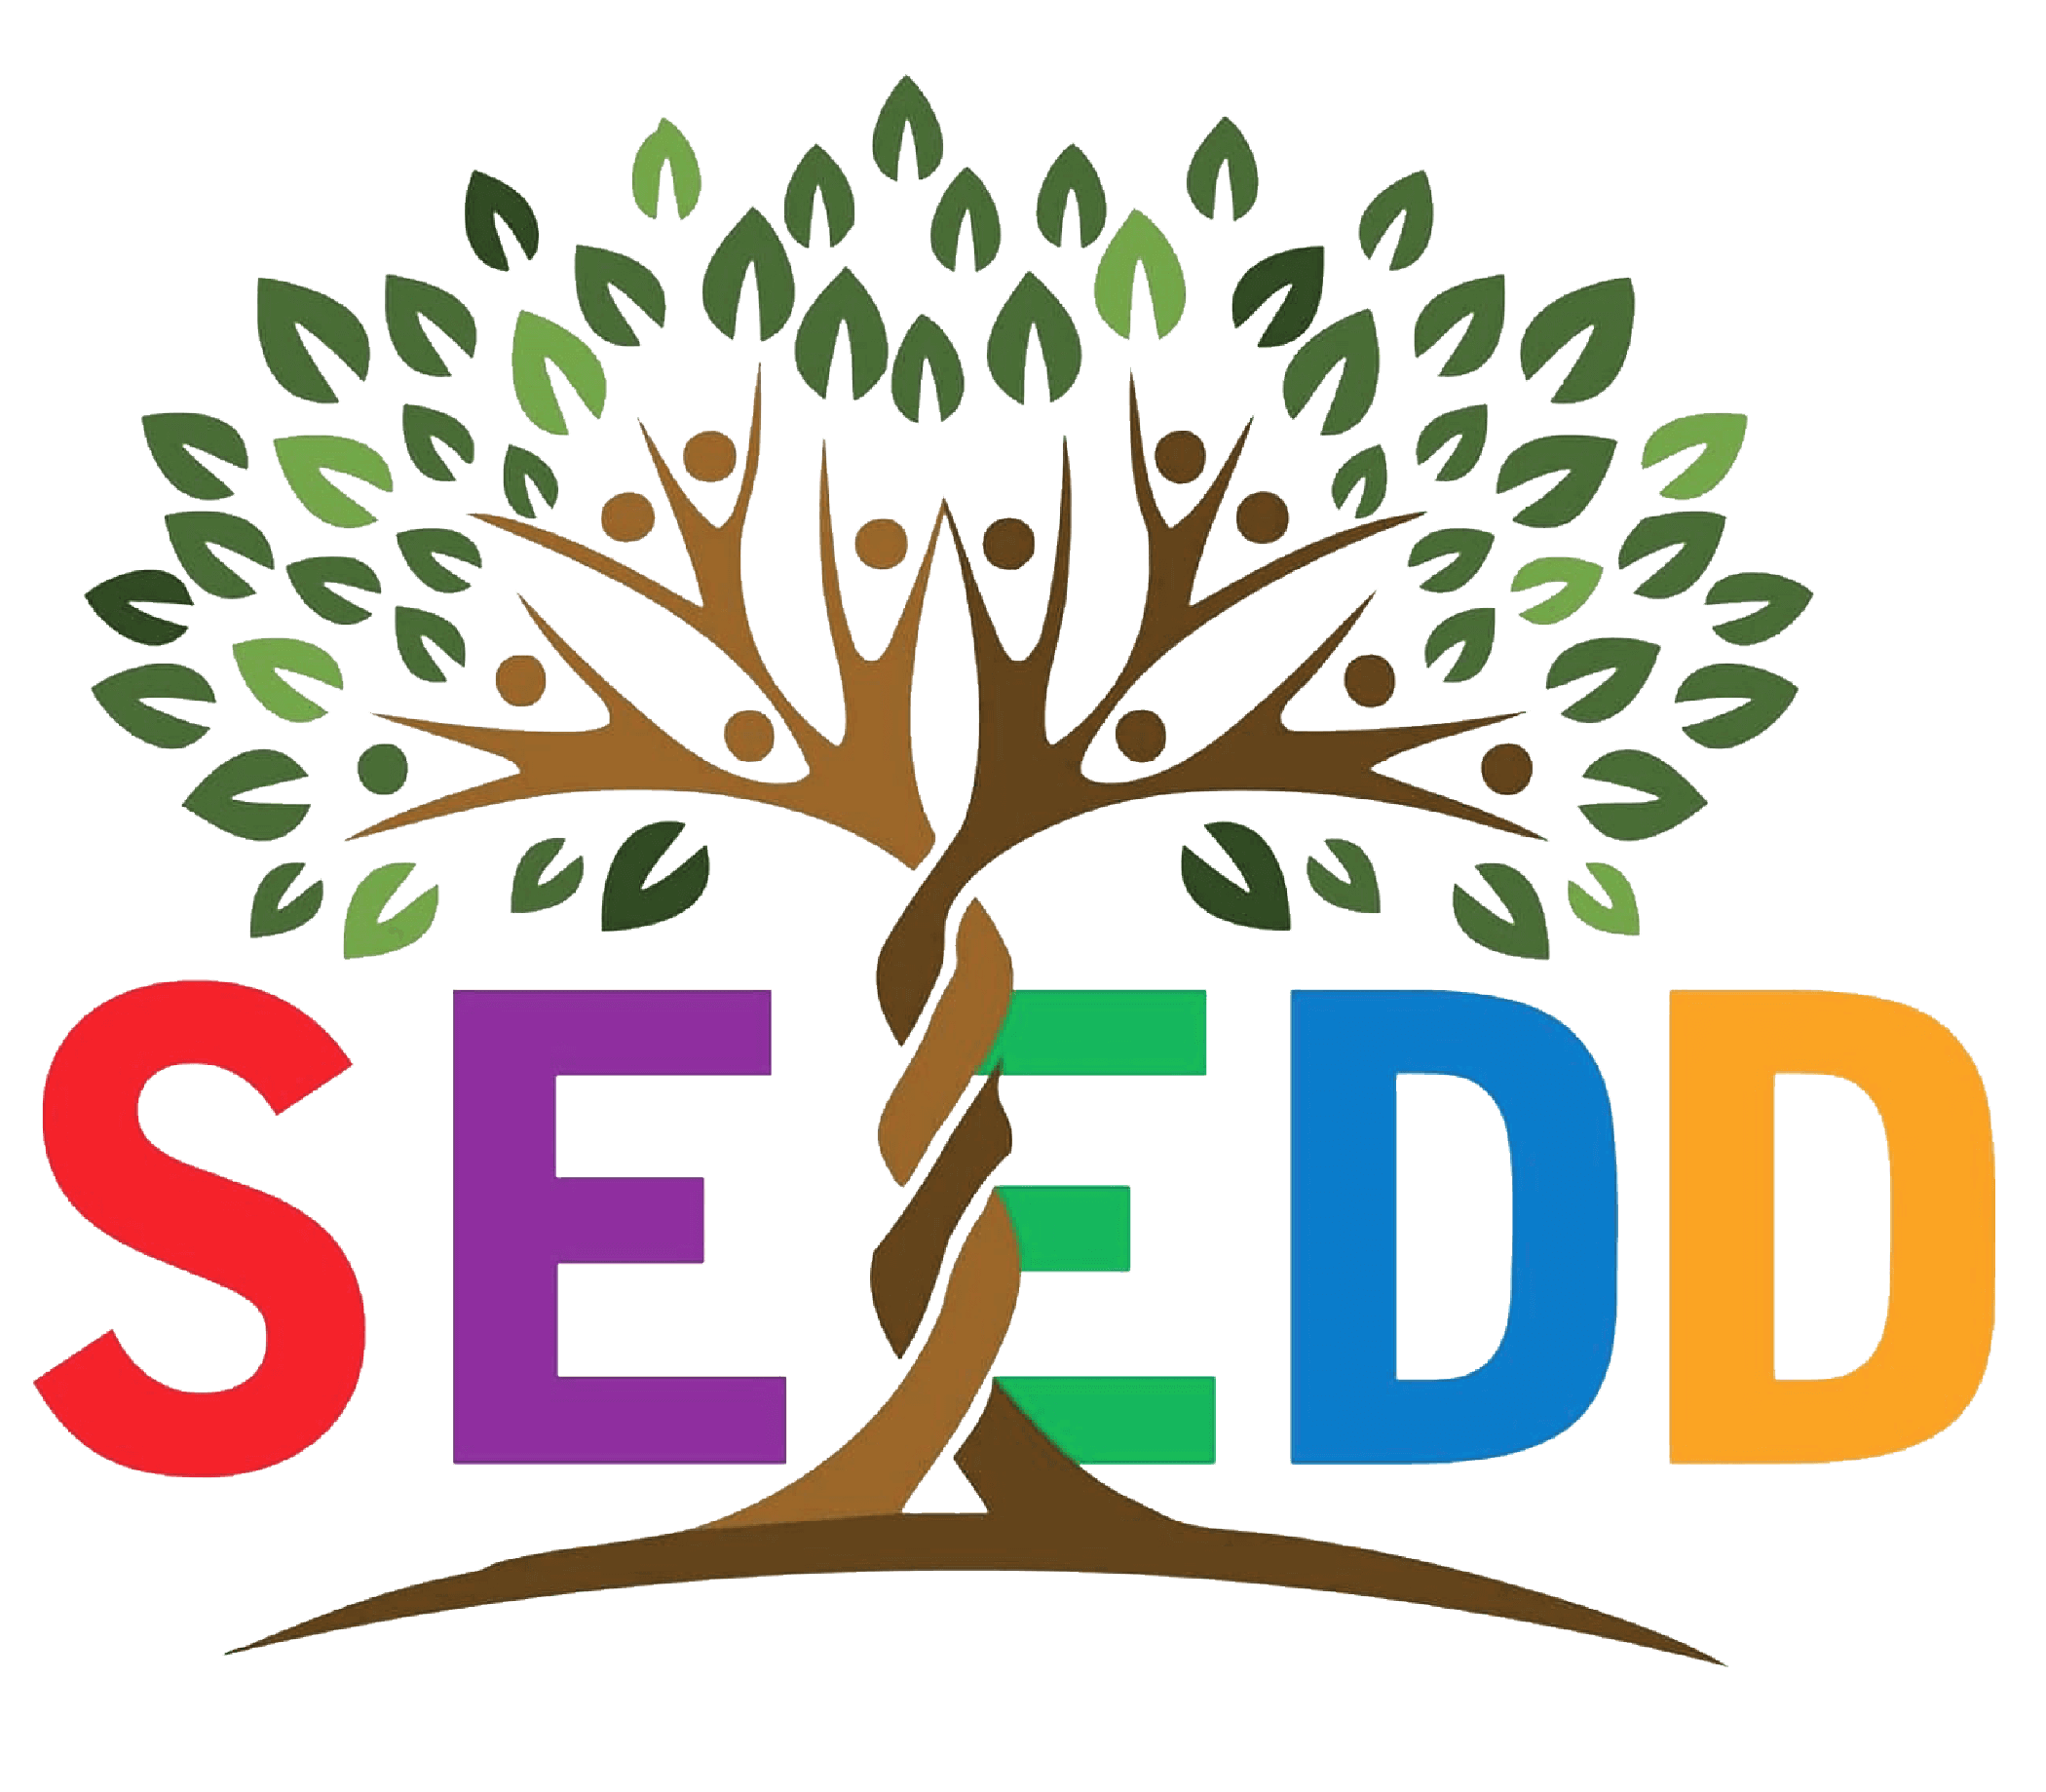 SEEDD (Synergie Expertise Environnement & Development Durable) Company Logo